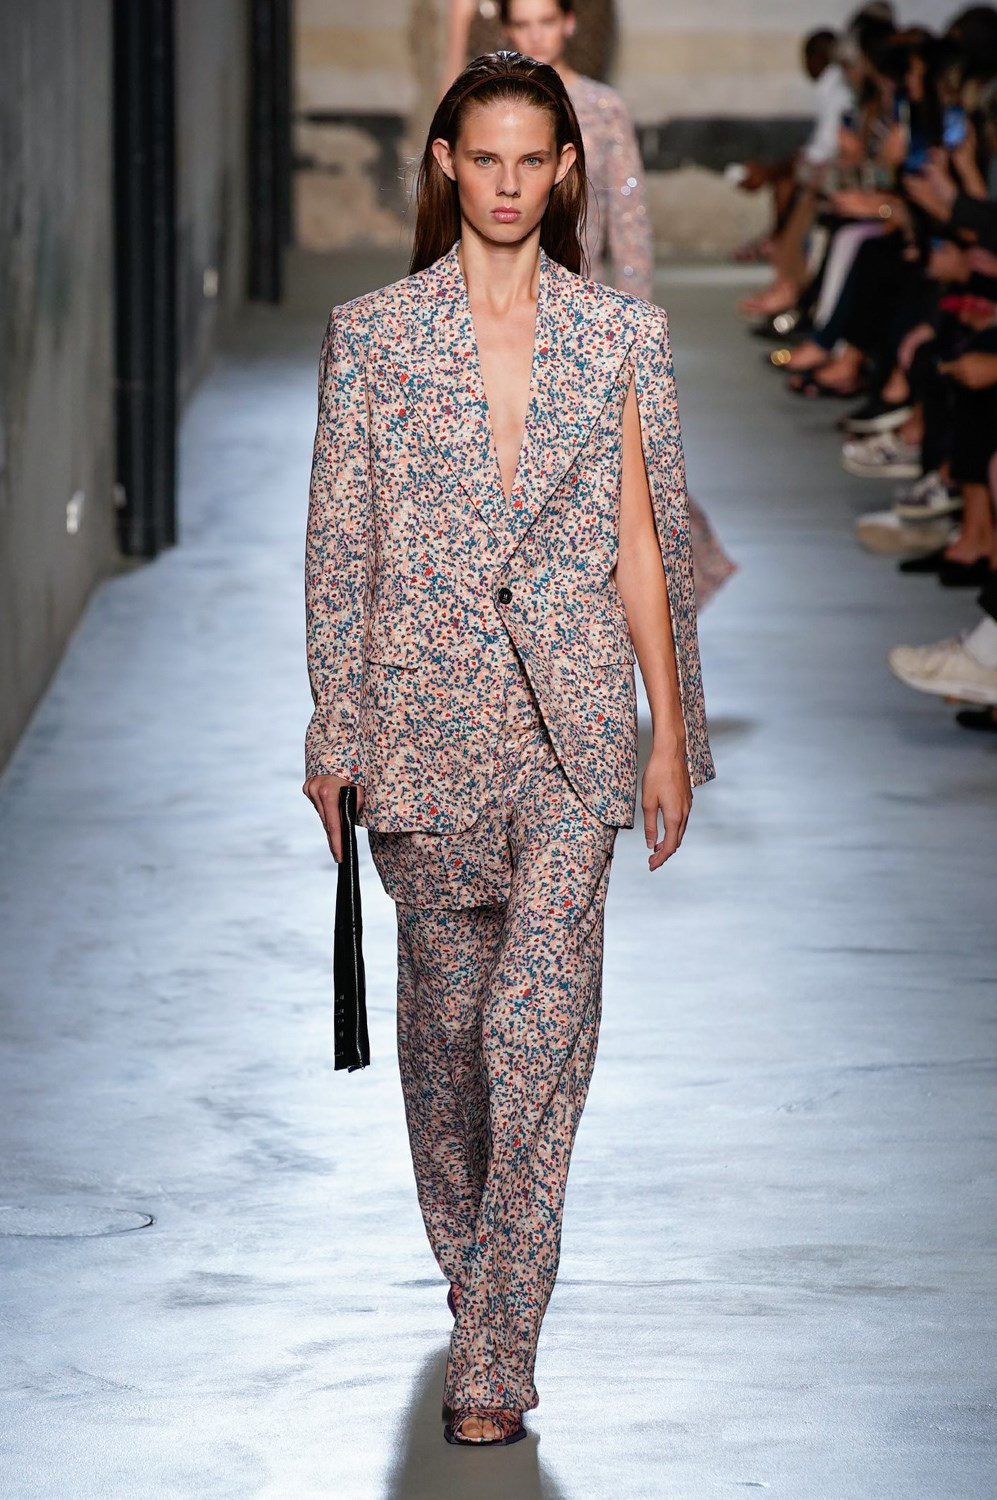 Milan Top 5 'Other' Spring 2020 Fashion Shows